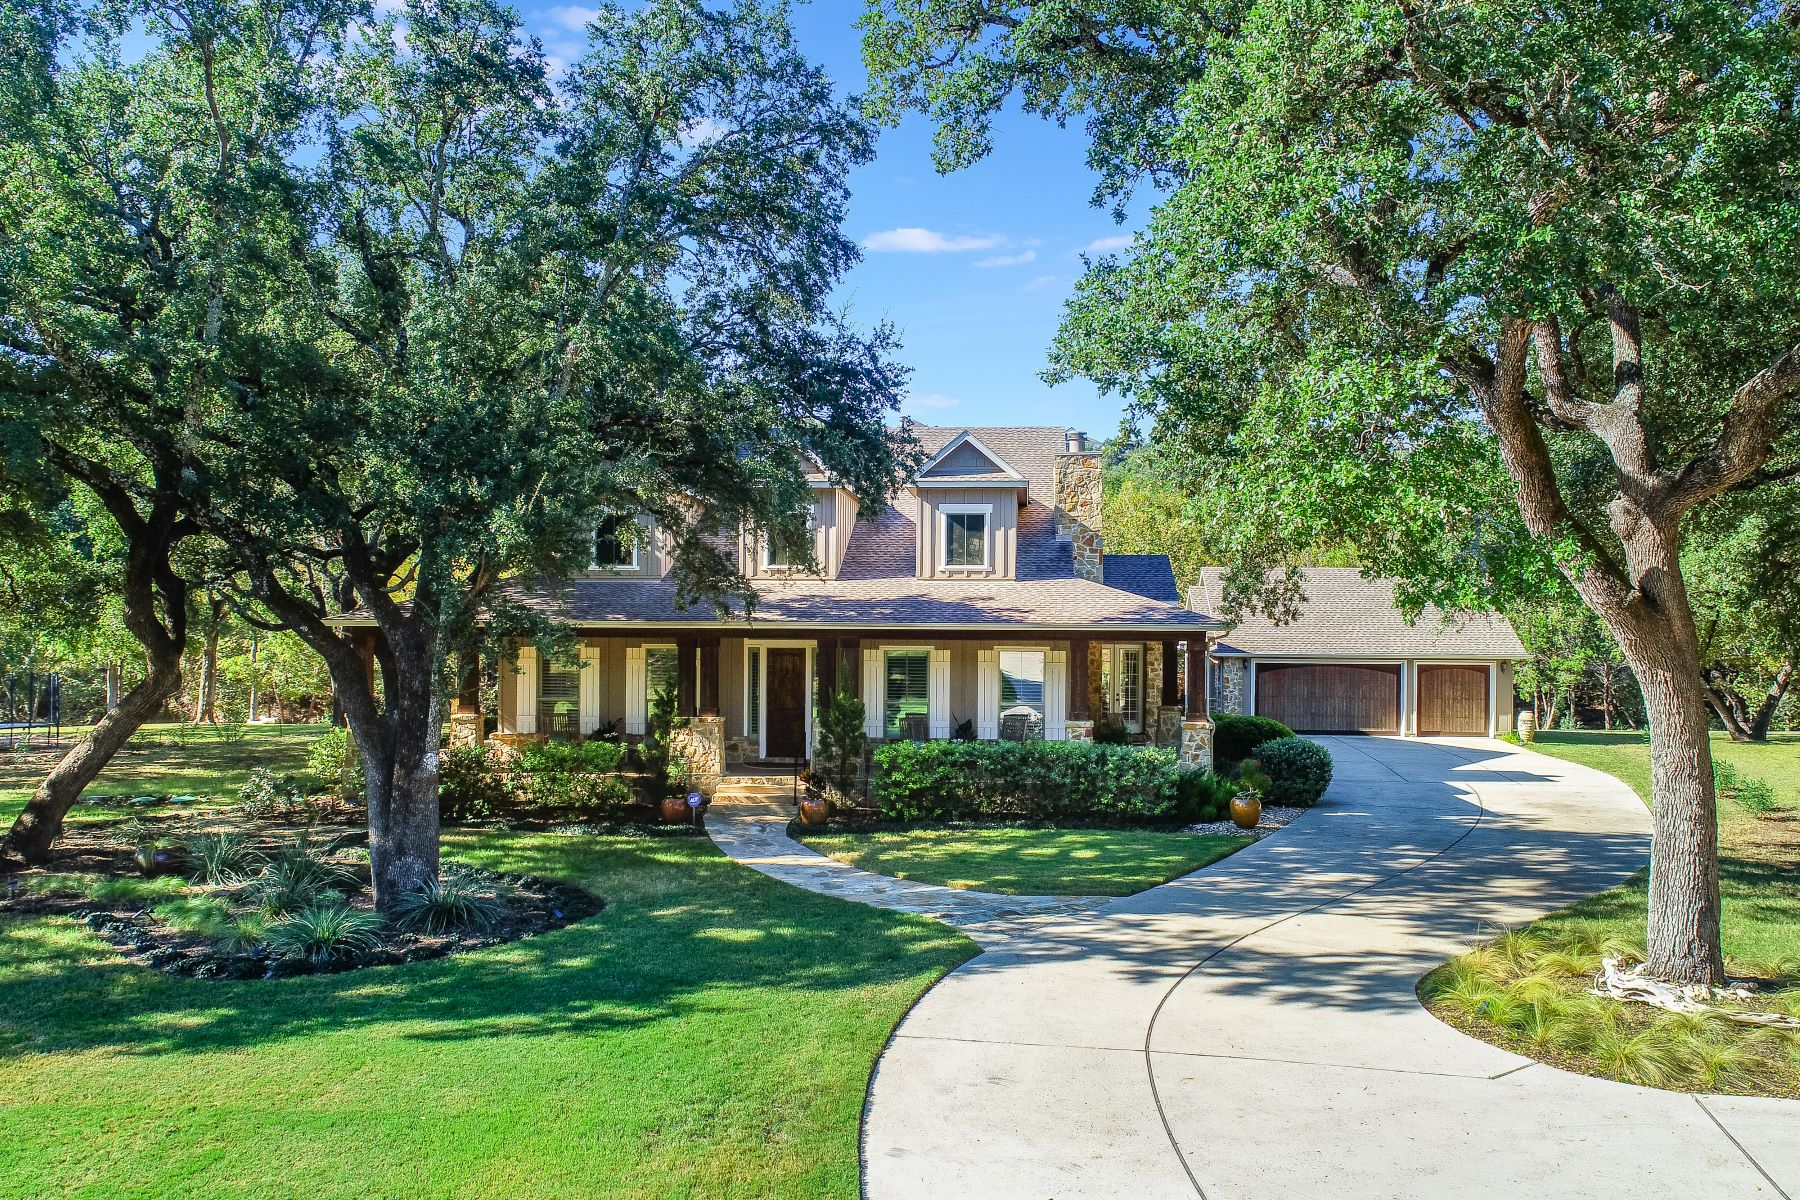 Single Family Homes for Sale at 1608 High Lonesome, Leander, TX 78641 1608 High Lonesome Leander, Texas 78641 United States